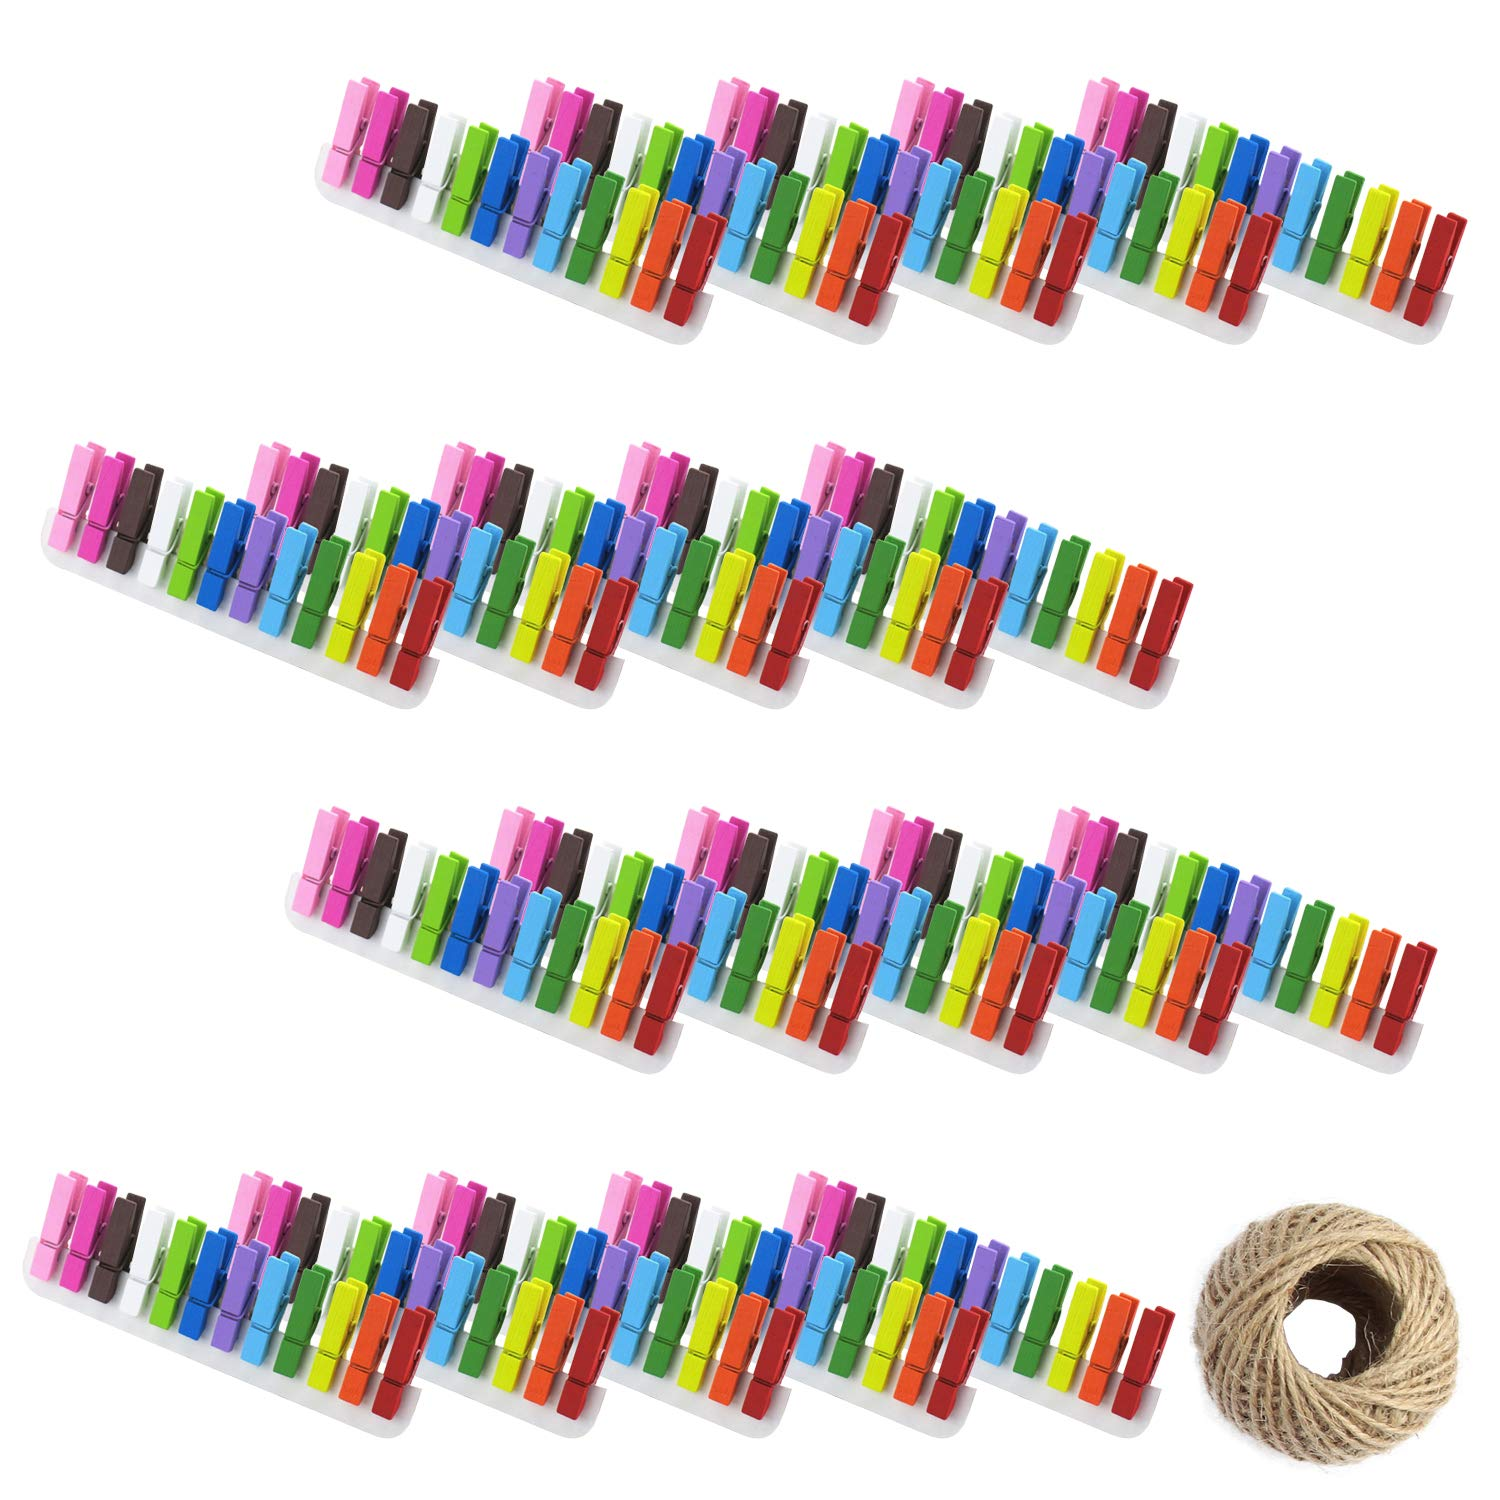 Tosnail 240 Pieces Mini Wooden Clothespins Photo Clips Paper Peg Pin Craft Clips with Jute Twine - 12 Color Assorted by Tosnail